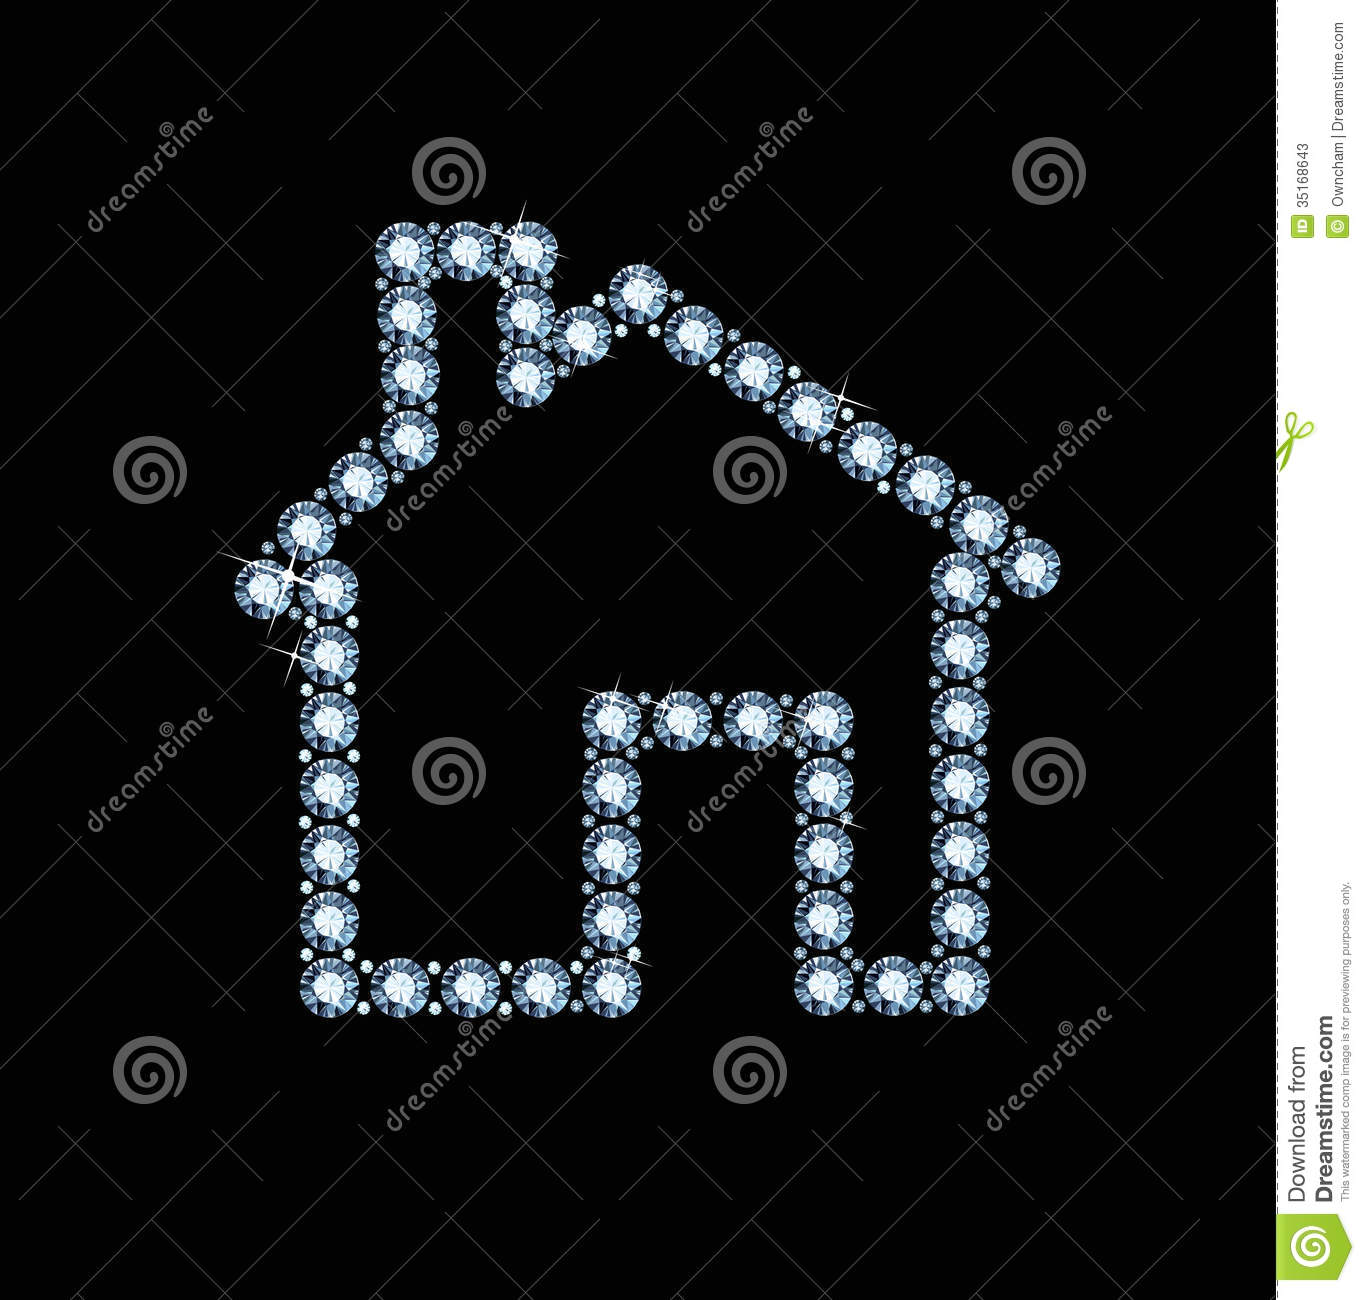 diamond house stock illustration - image: 49963642